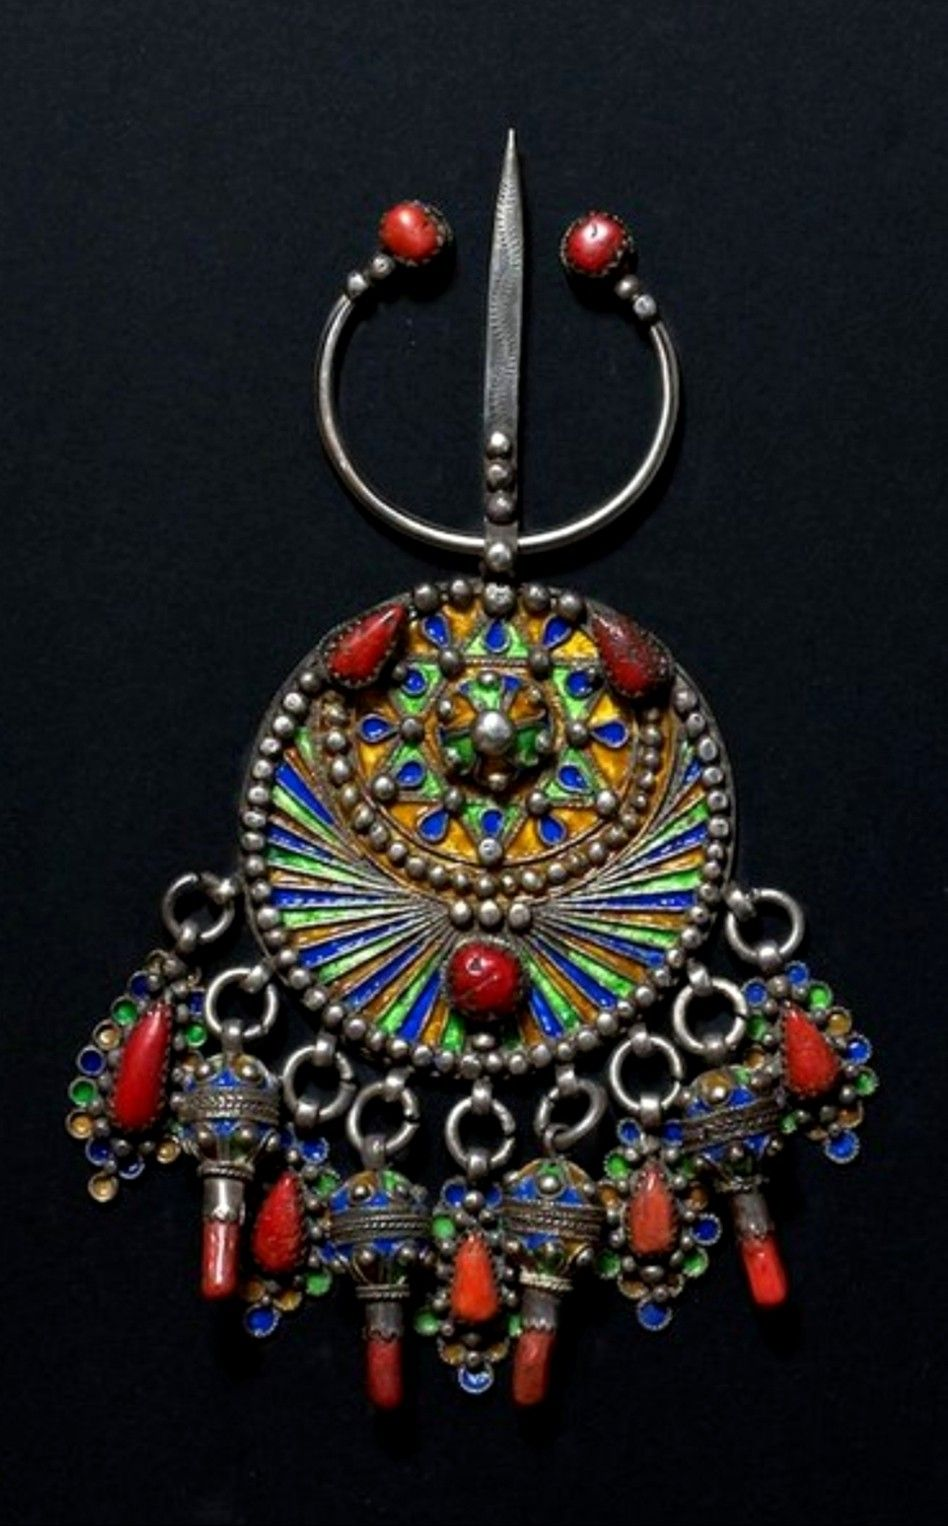 Berber Silver And Coral Brooch Morocco Tribal Jewelry Fantasy